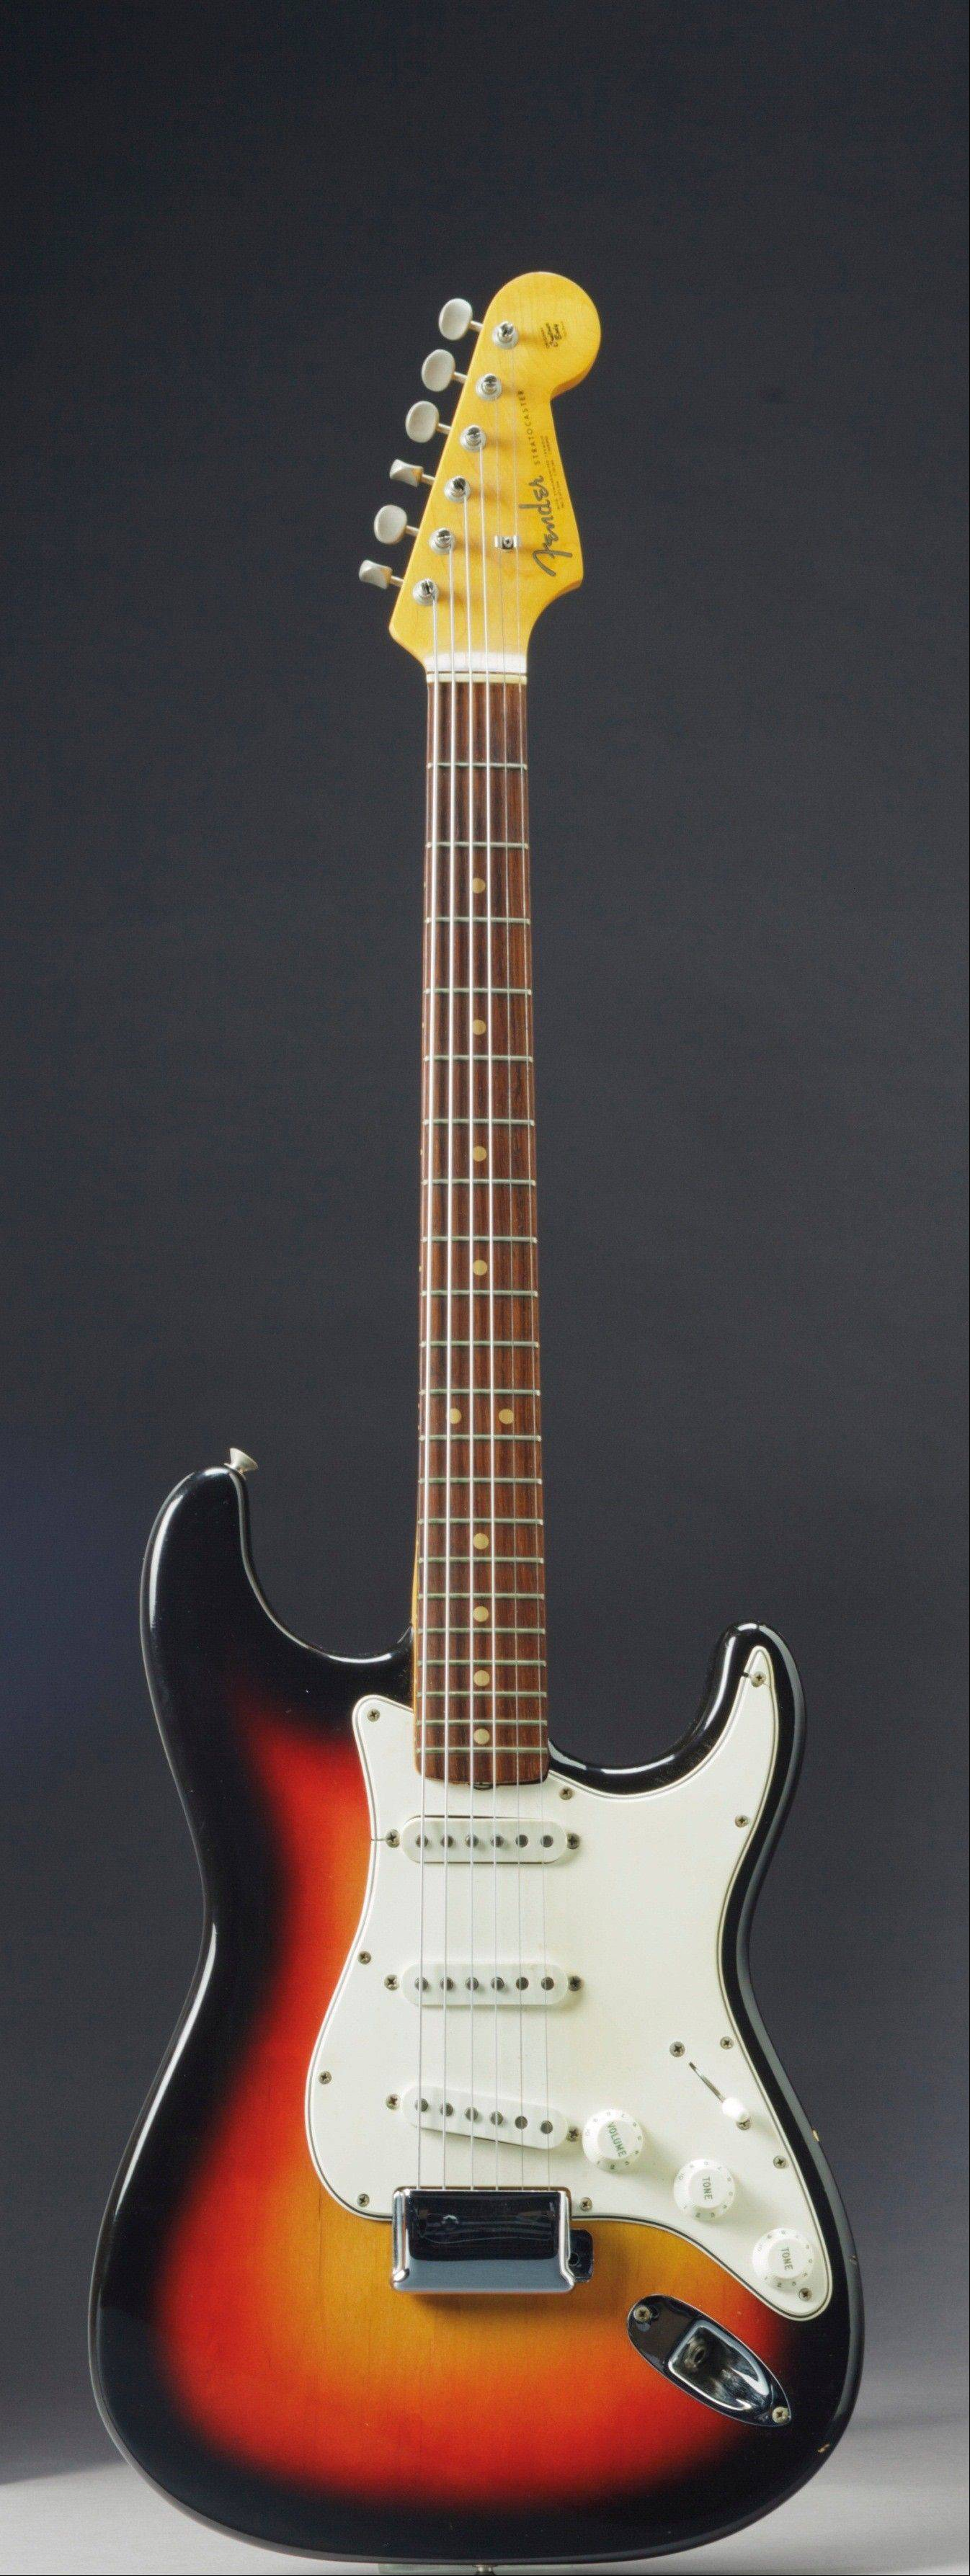 The Fender Stratocaster a young Bob Dylan played at the historic 1965 Newport Folk Festival could bring as much as half a million dollars when it comes up for auction at Christie�s New York on Dec. 6. The festival marked the first time Dylan went electric, a defining moment that marked his move from acoustic folk to electric rock and roll, drawing boos from folk-music purists.